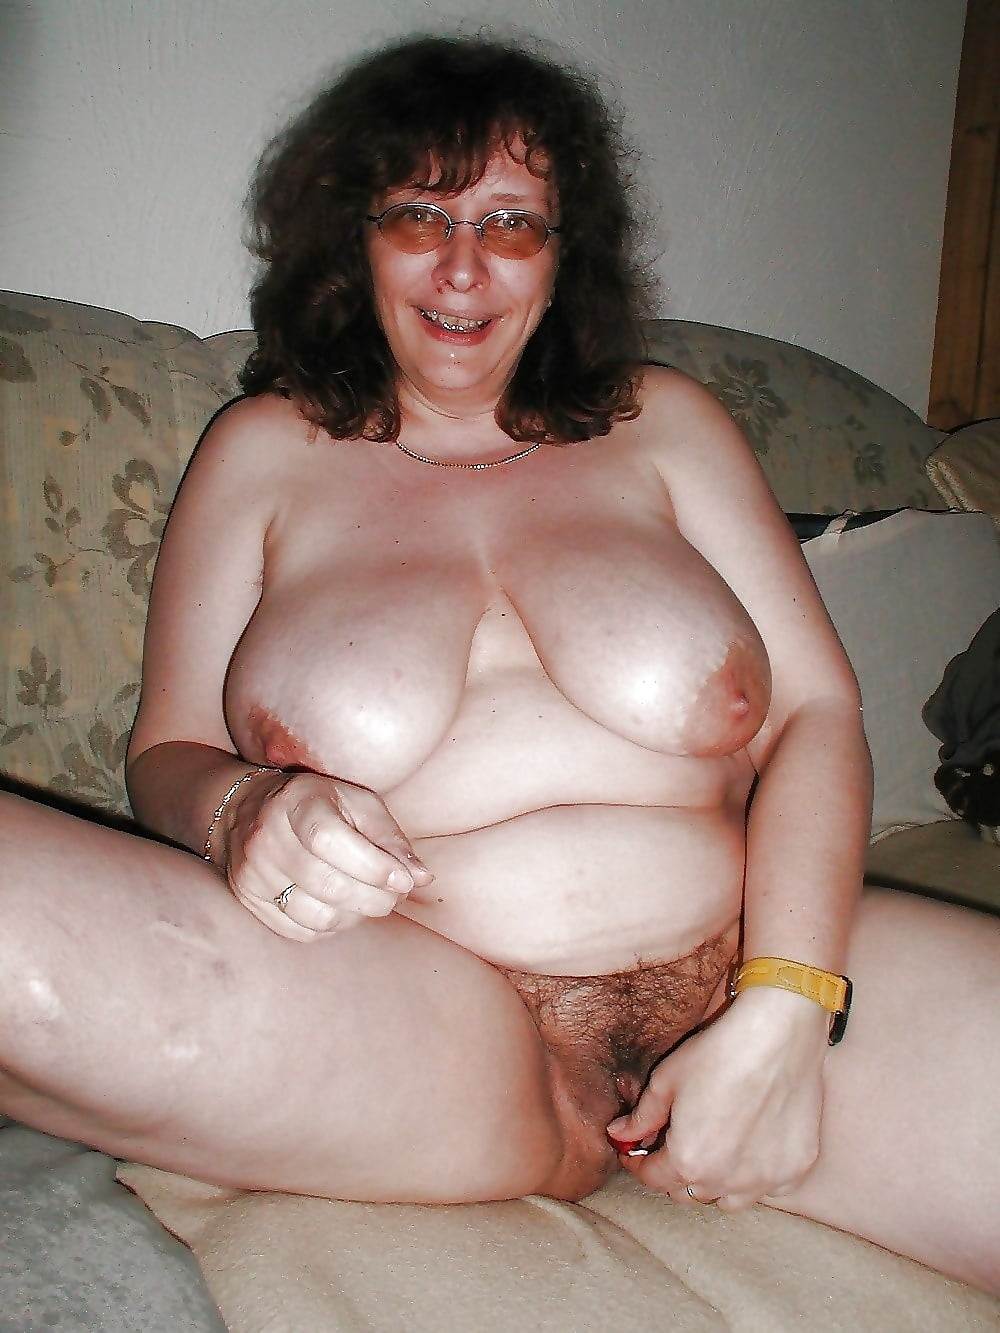 Fat Granny Sluts And Bbw Trailer Trash Moms - 46 Pics  Xhamster-2746